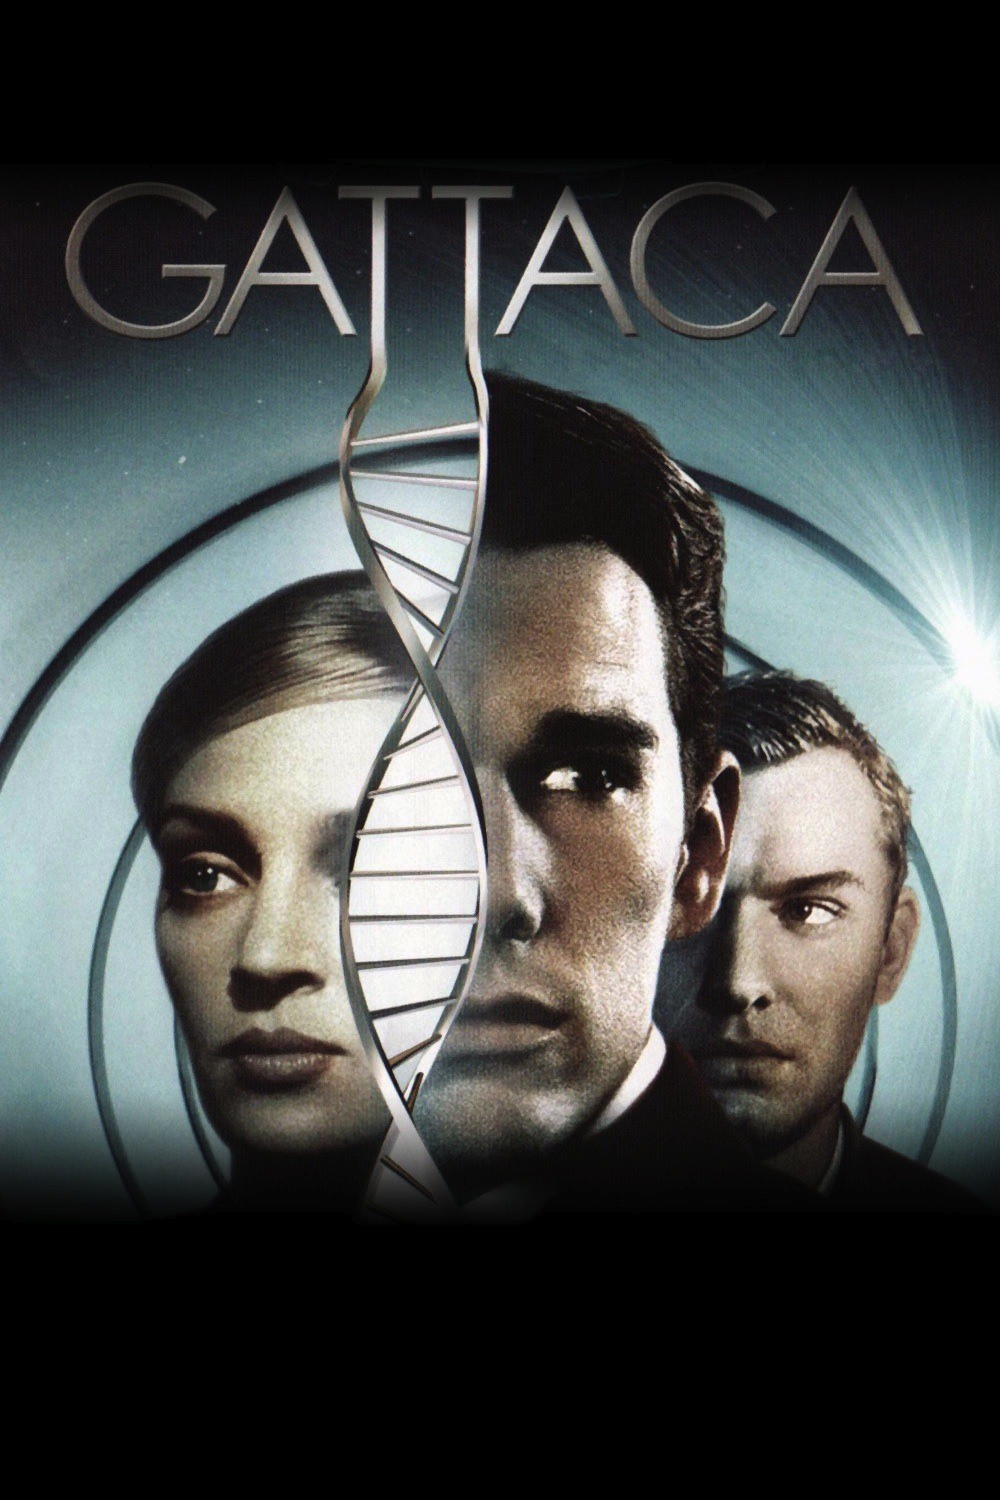 anton in gattaca Directed by andrew niccol with ethan hawke, uma thurman, jude law, gore vidal a genetically inferior man assumes the identity of a superior one in order to pursue his lifelong dream of space travel.